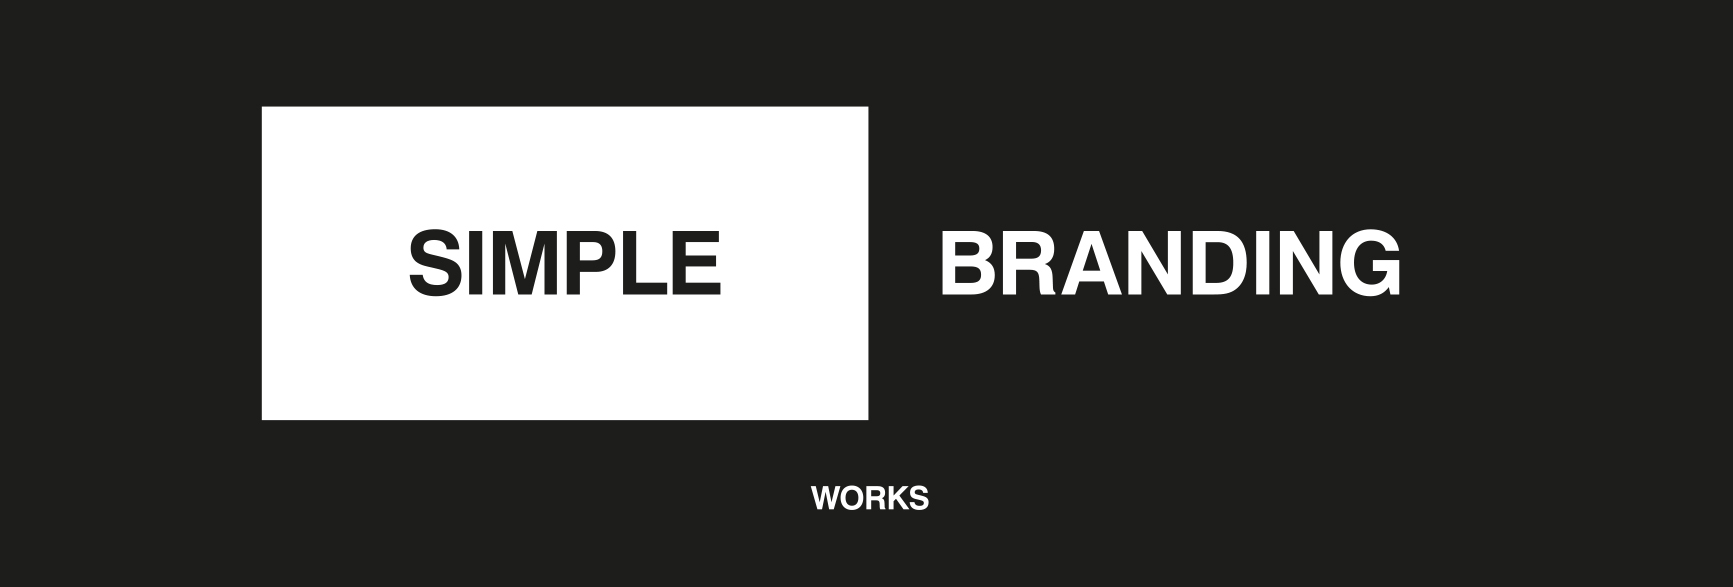 When it comes to branding, simple is better.